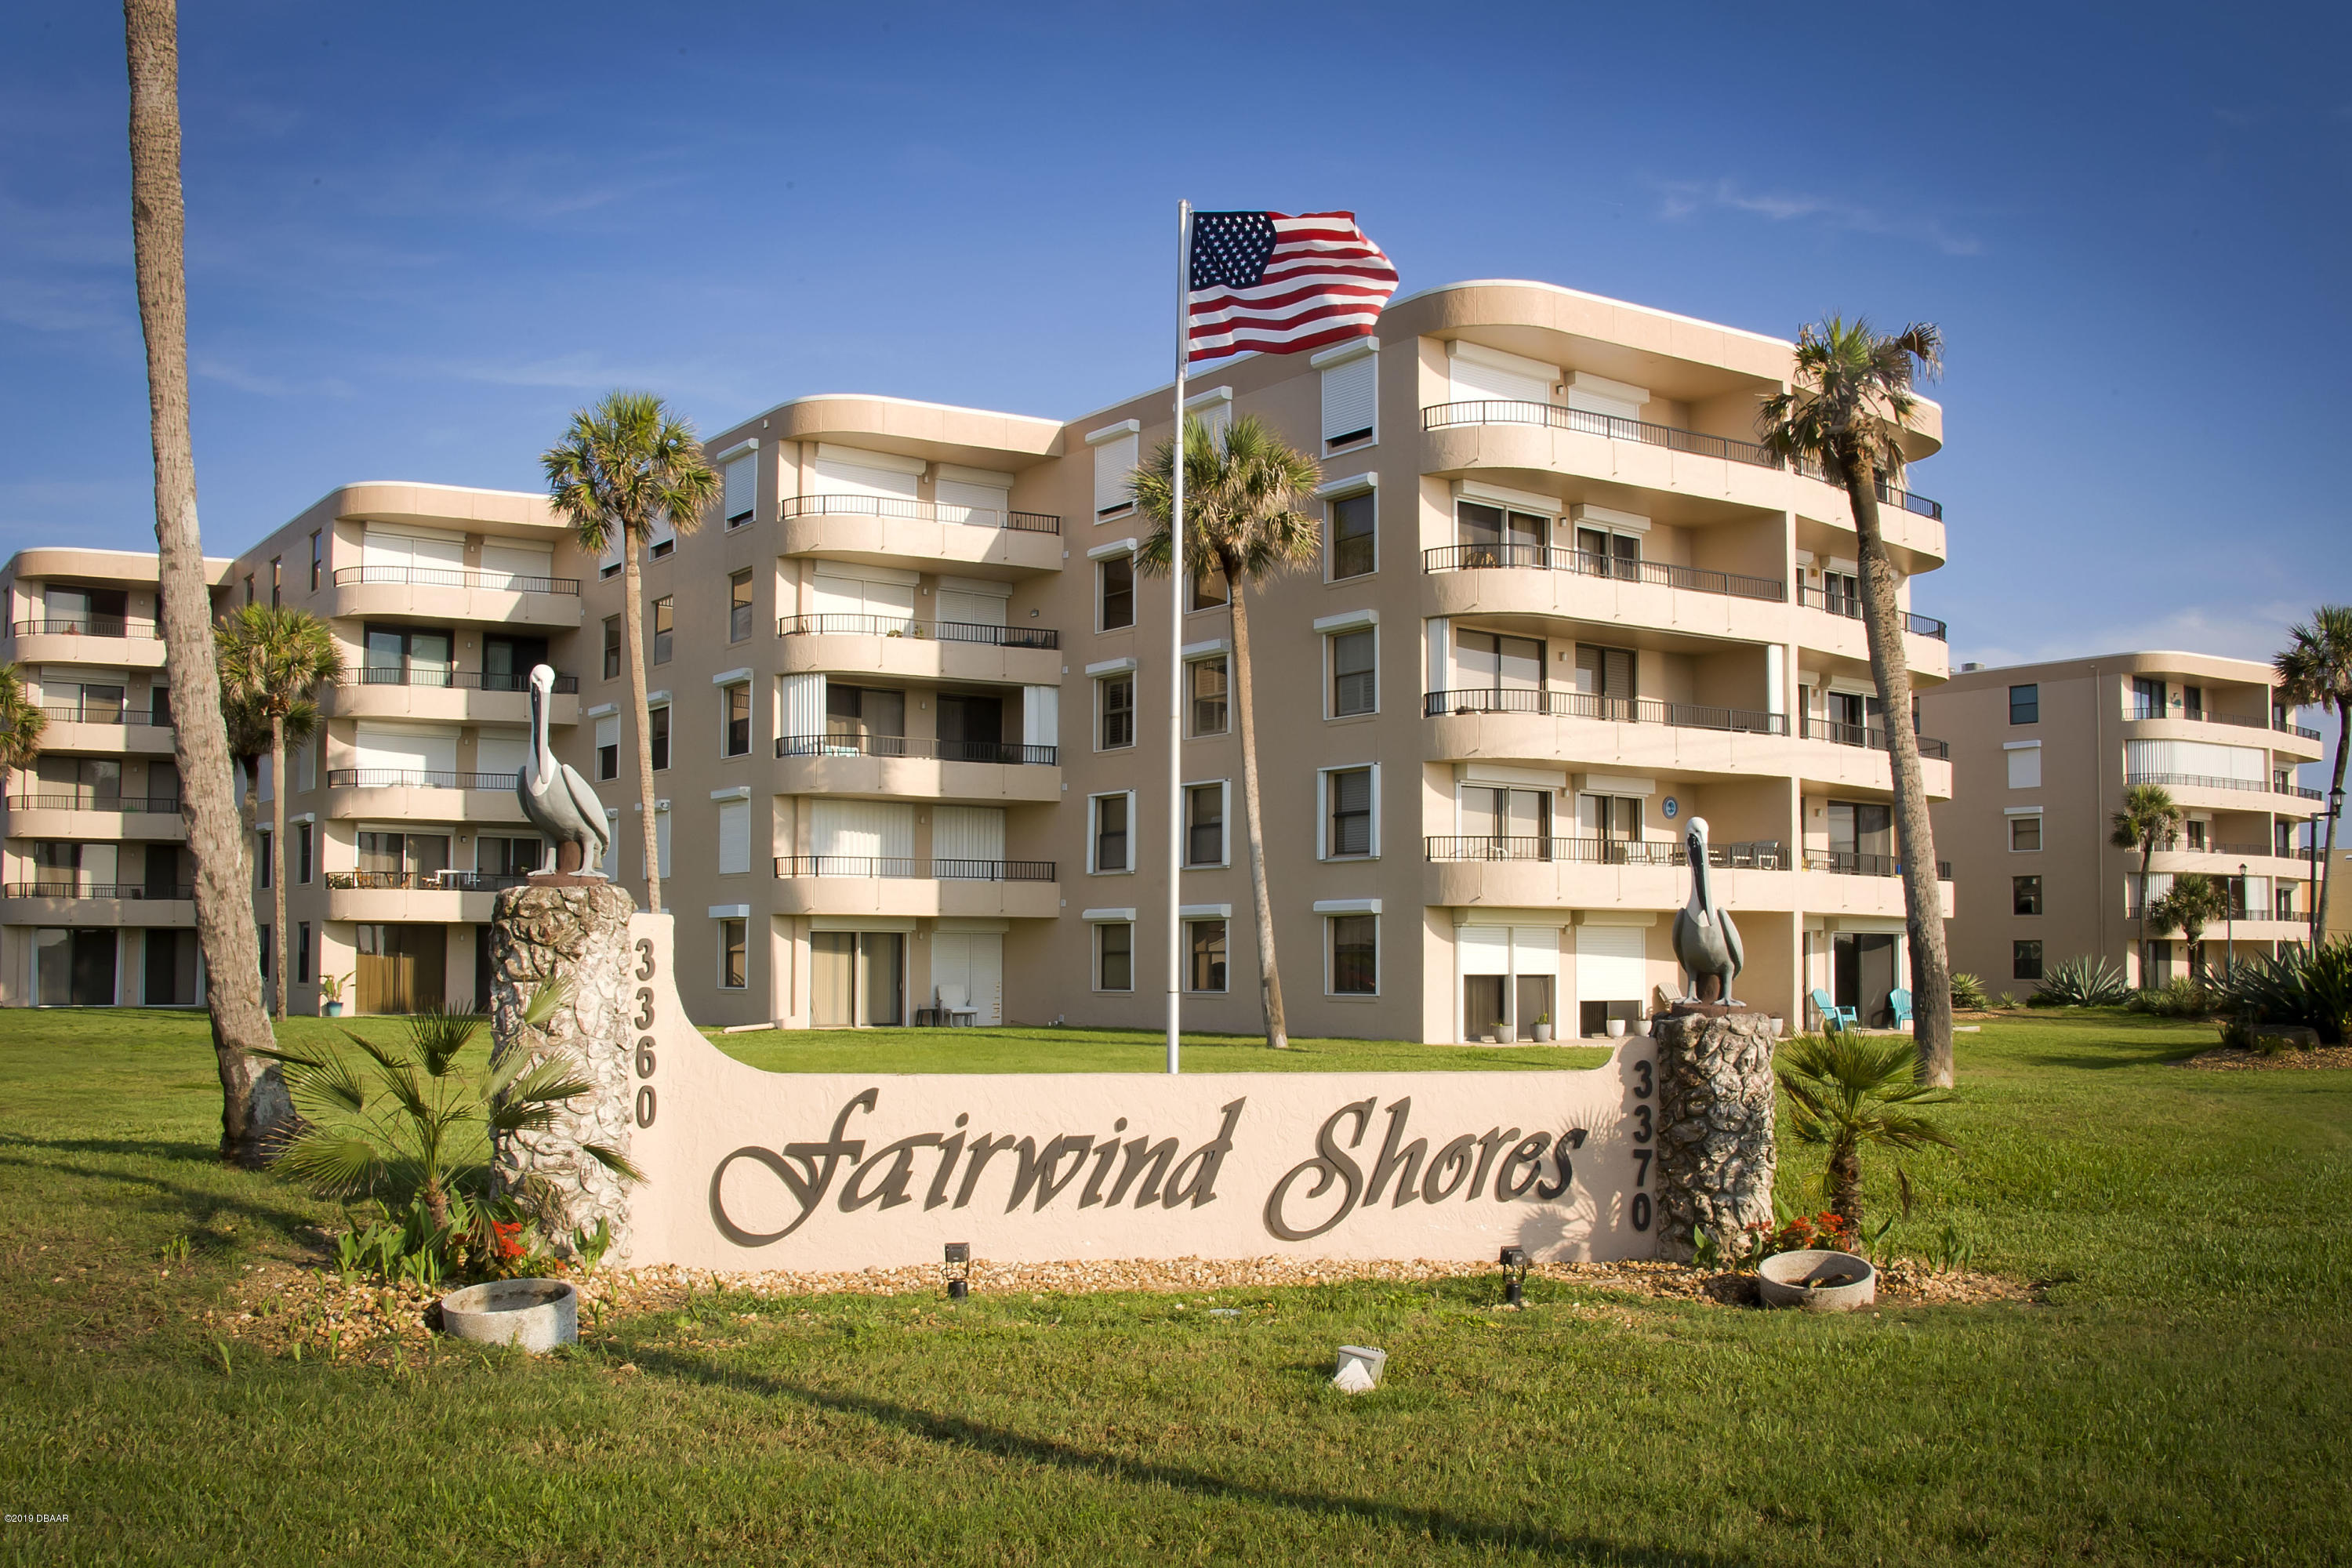 3360 Ocean Shore Boulevard, Ormond-By-The-Sea, Florida